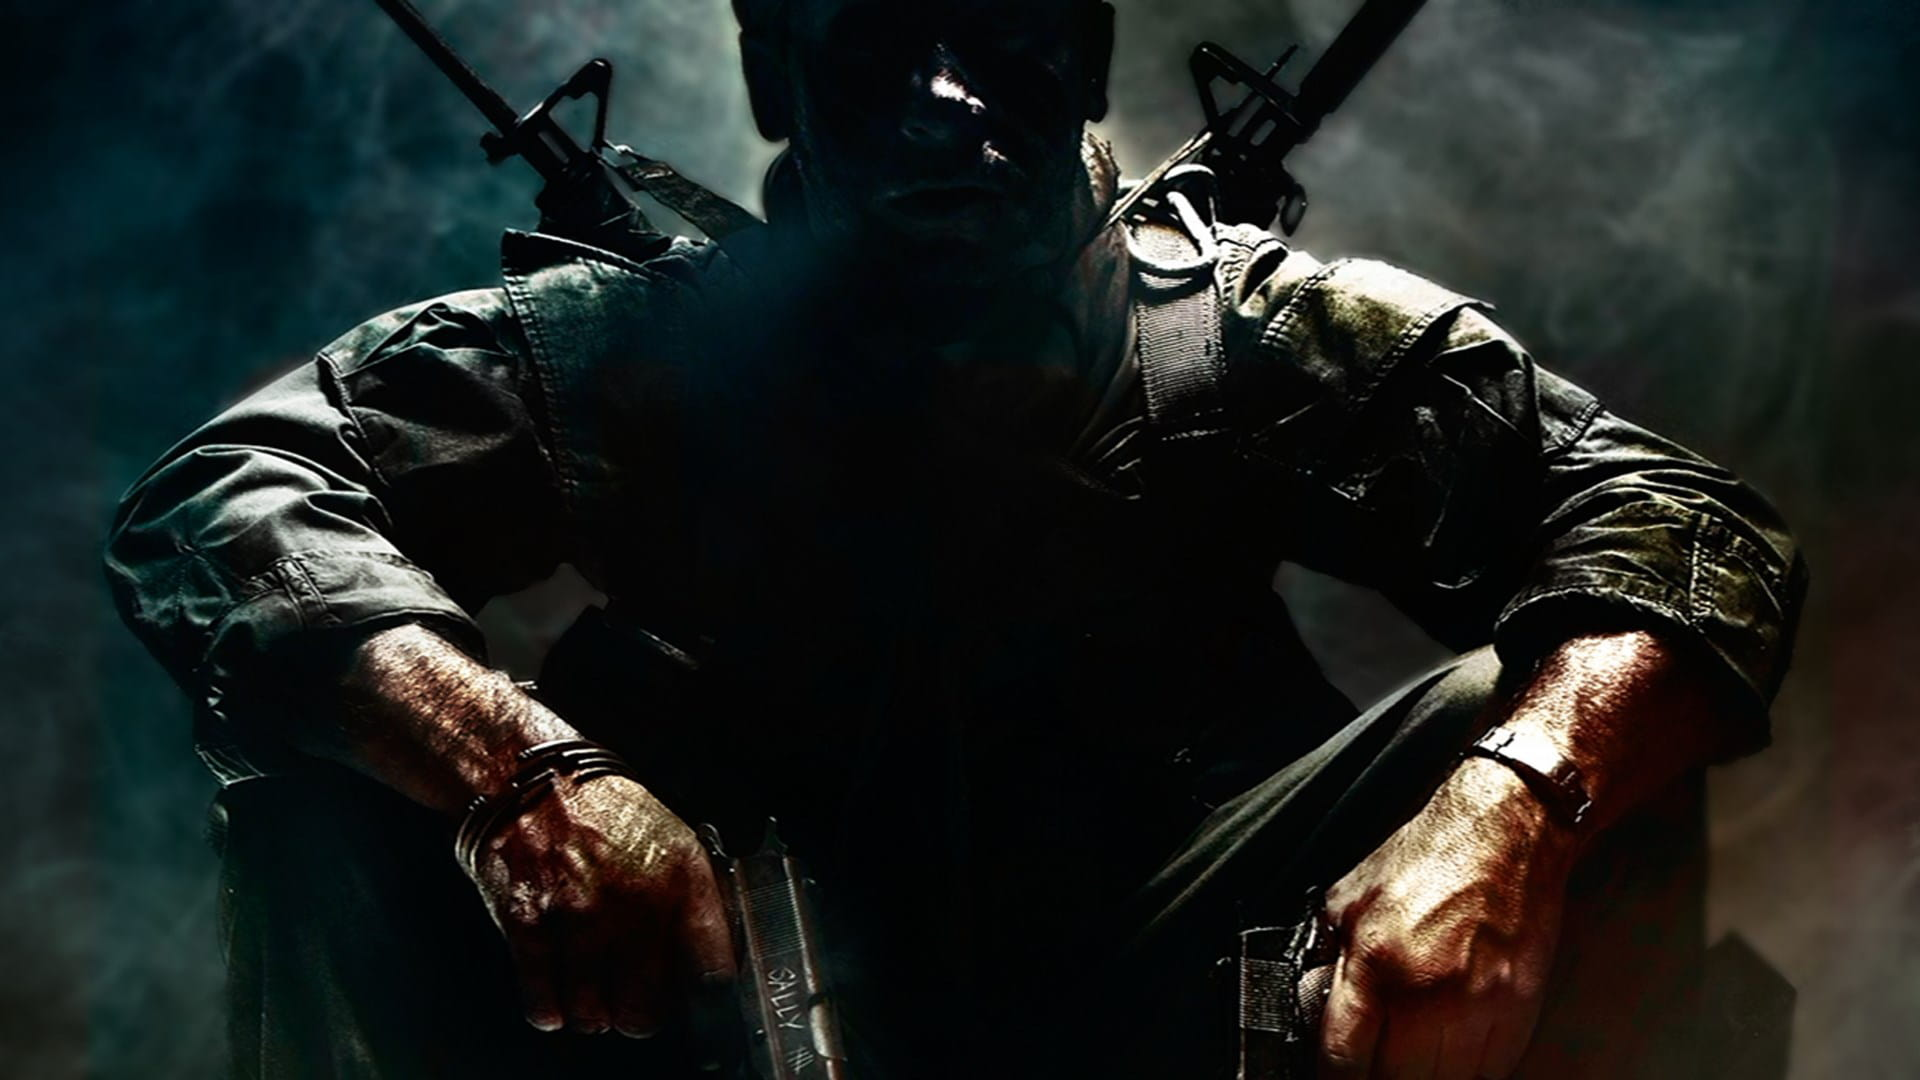 Call Of Duty Black Ops Cheat Codes Ccm